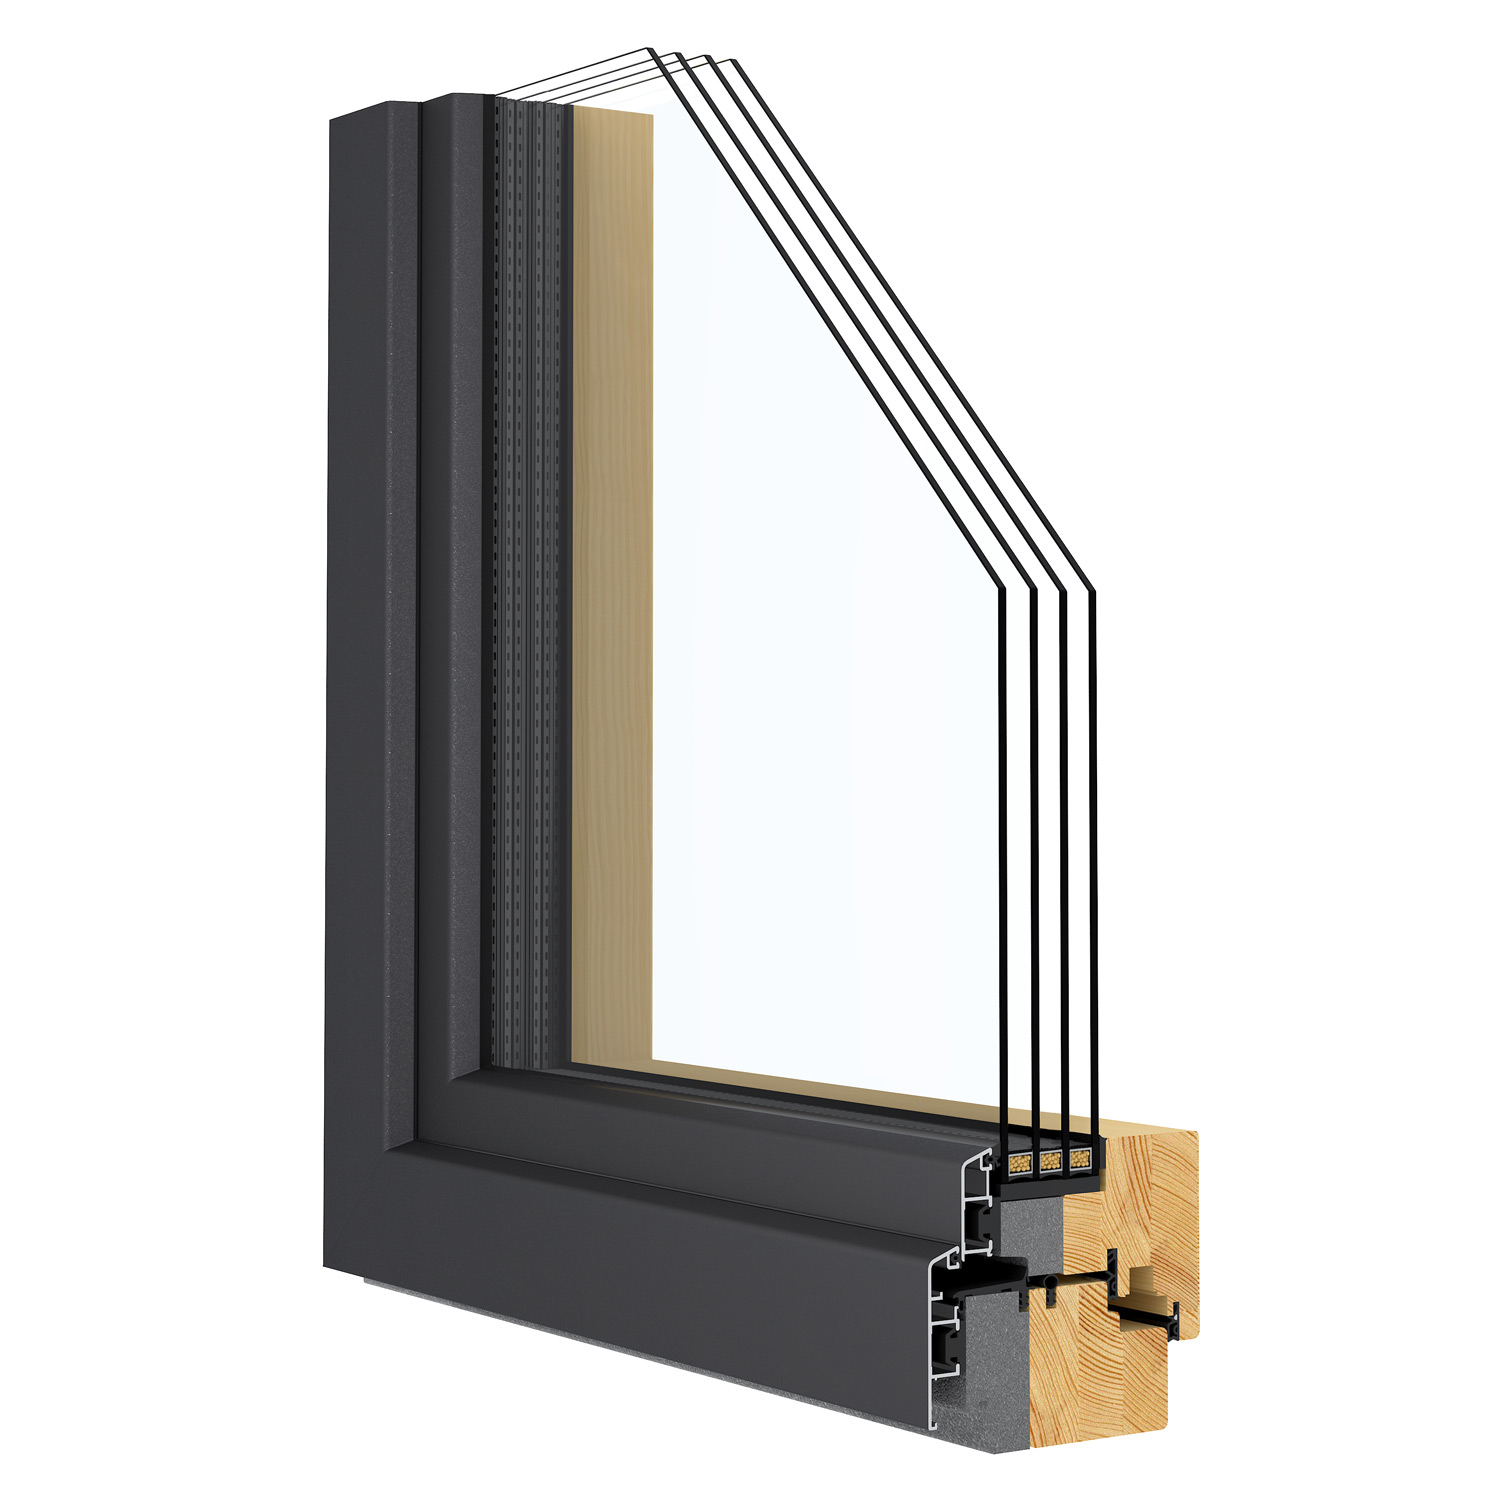 R-11 Zola Arctic™ window rendering